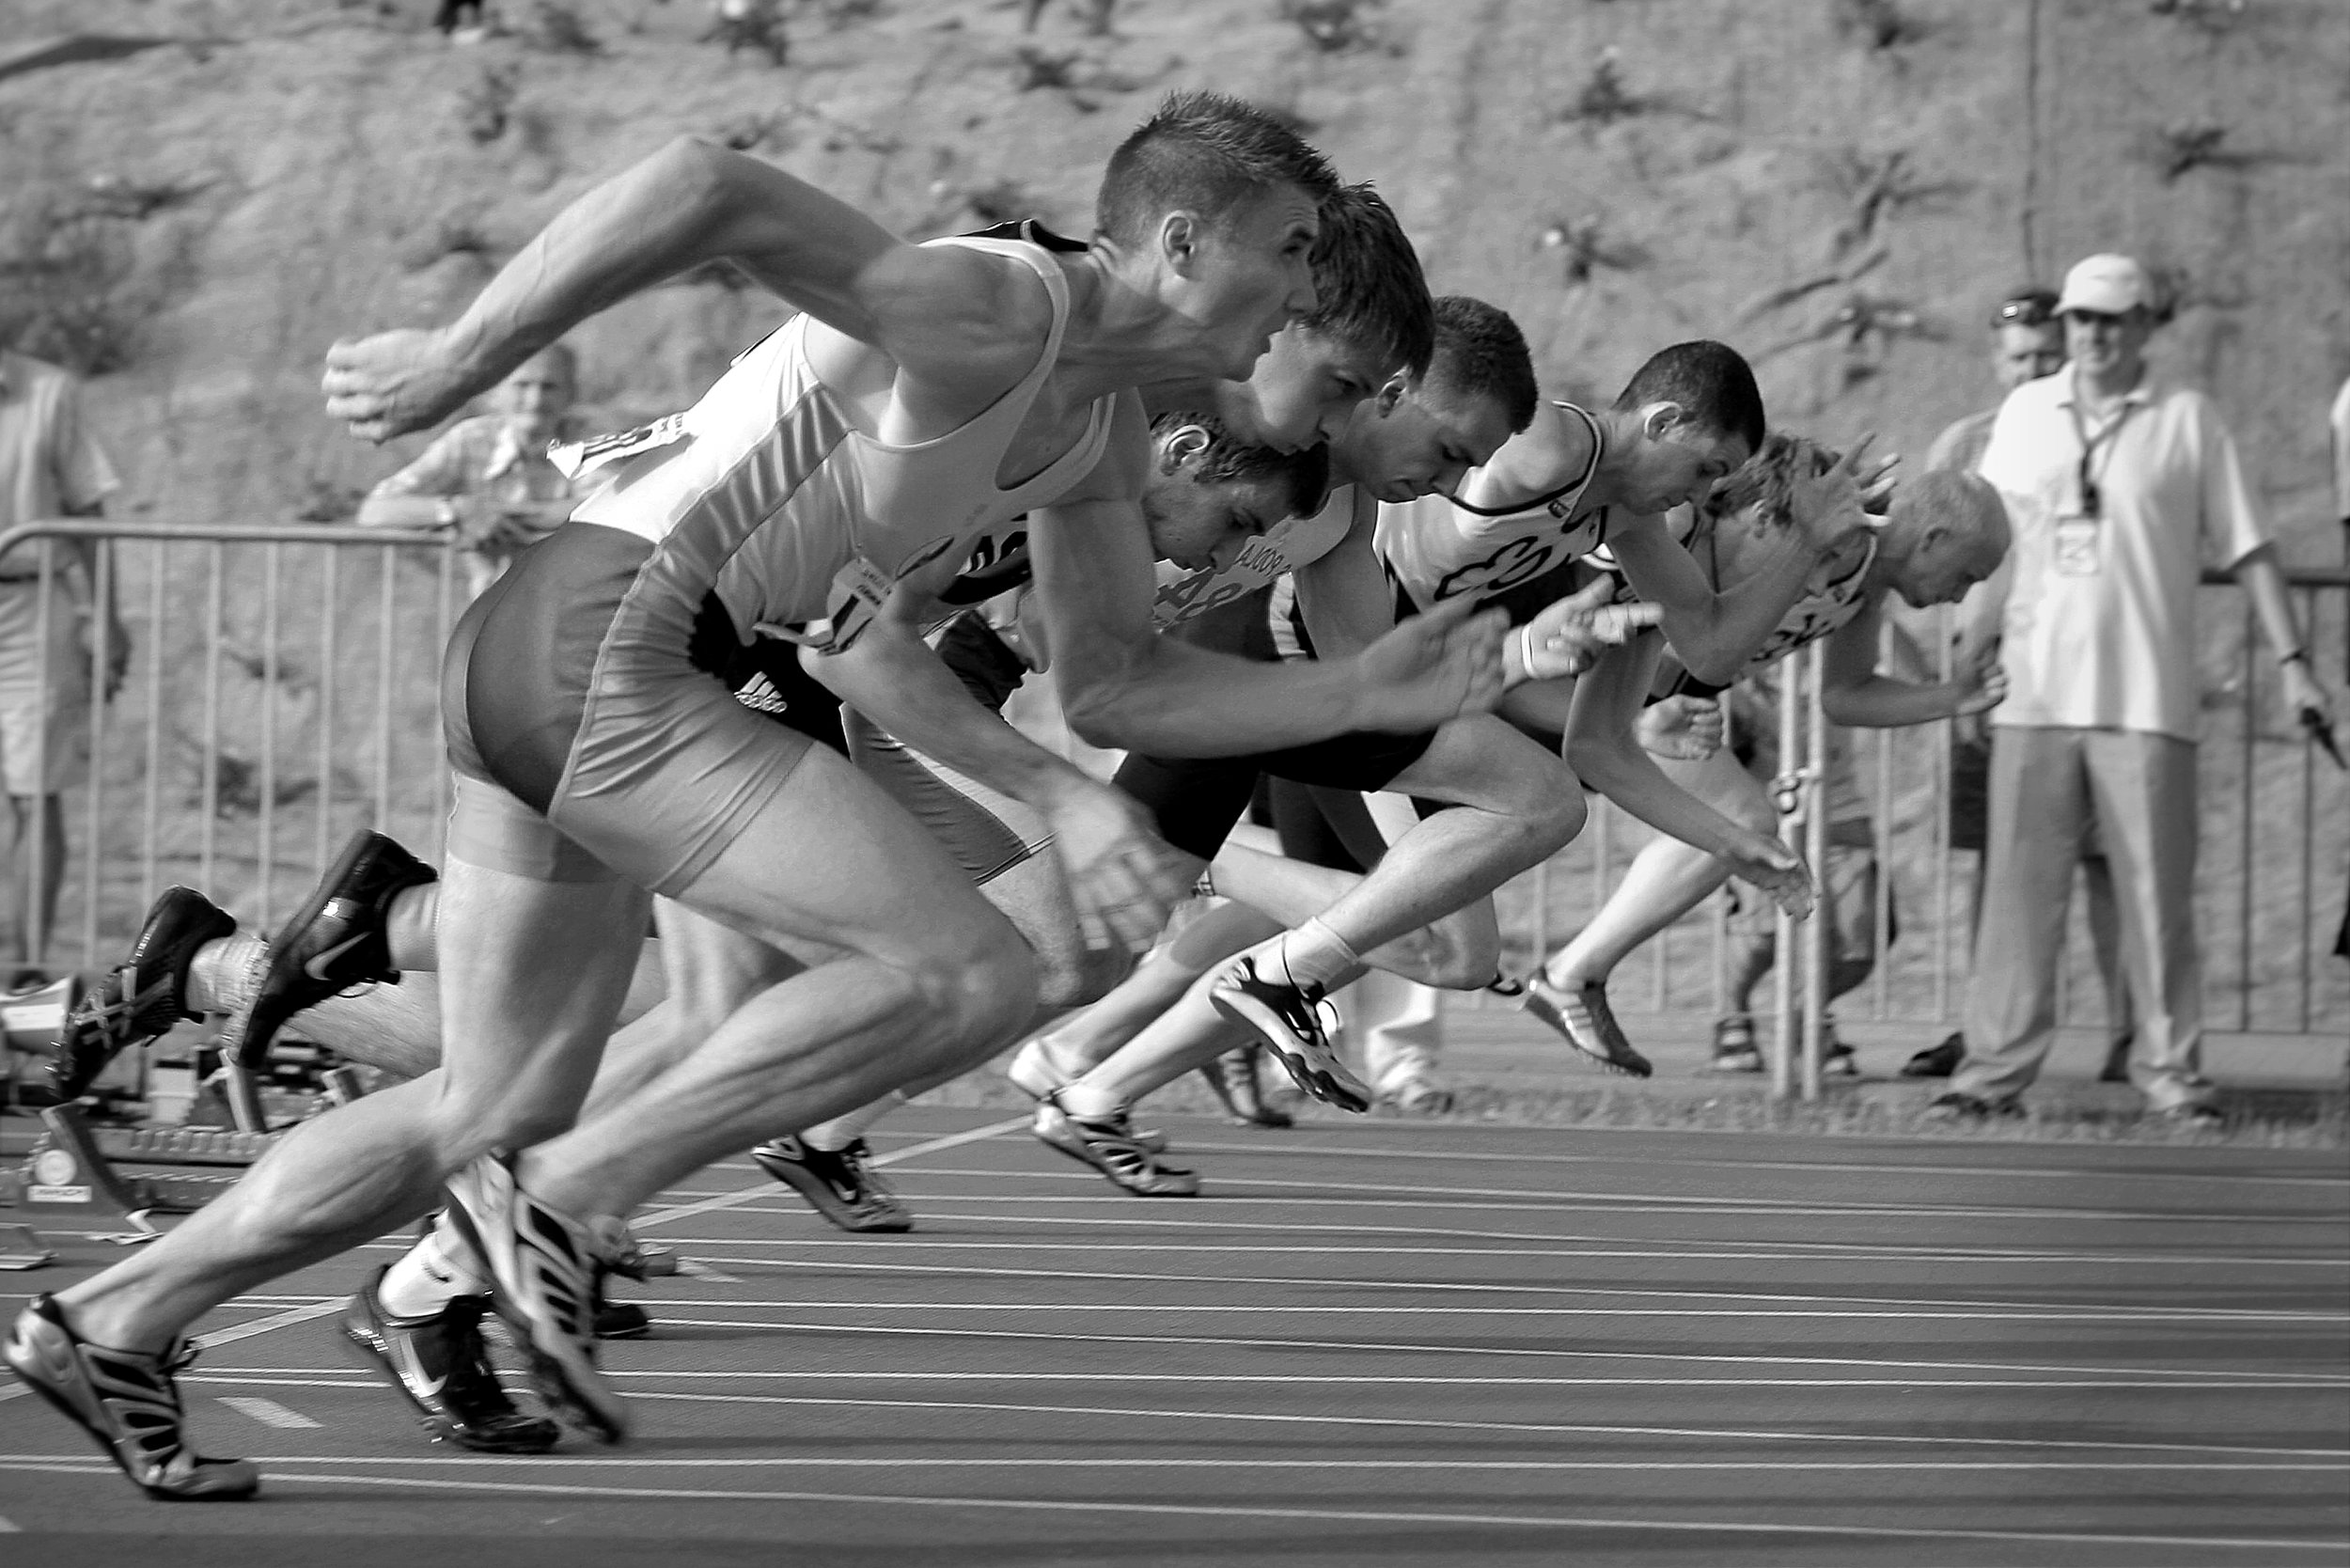 Business_Capabilities_Explore (athletes-athletics-black-and-white-34514).jpg